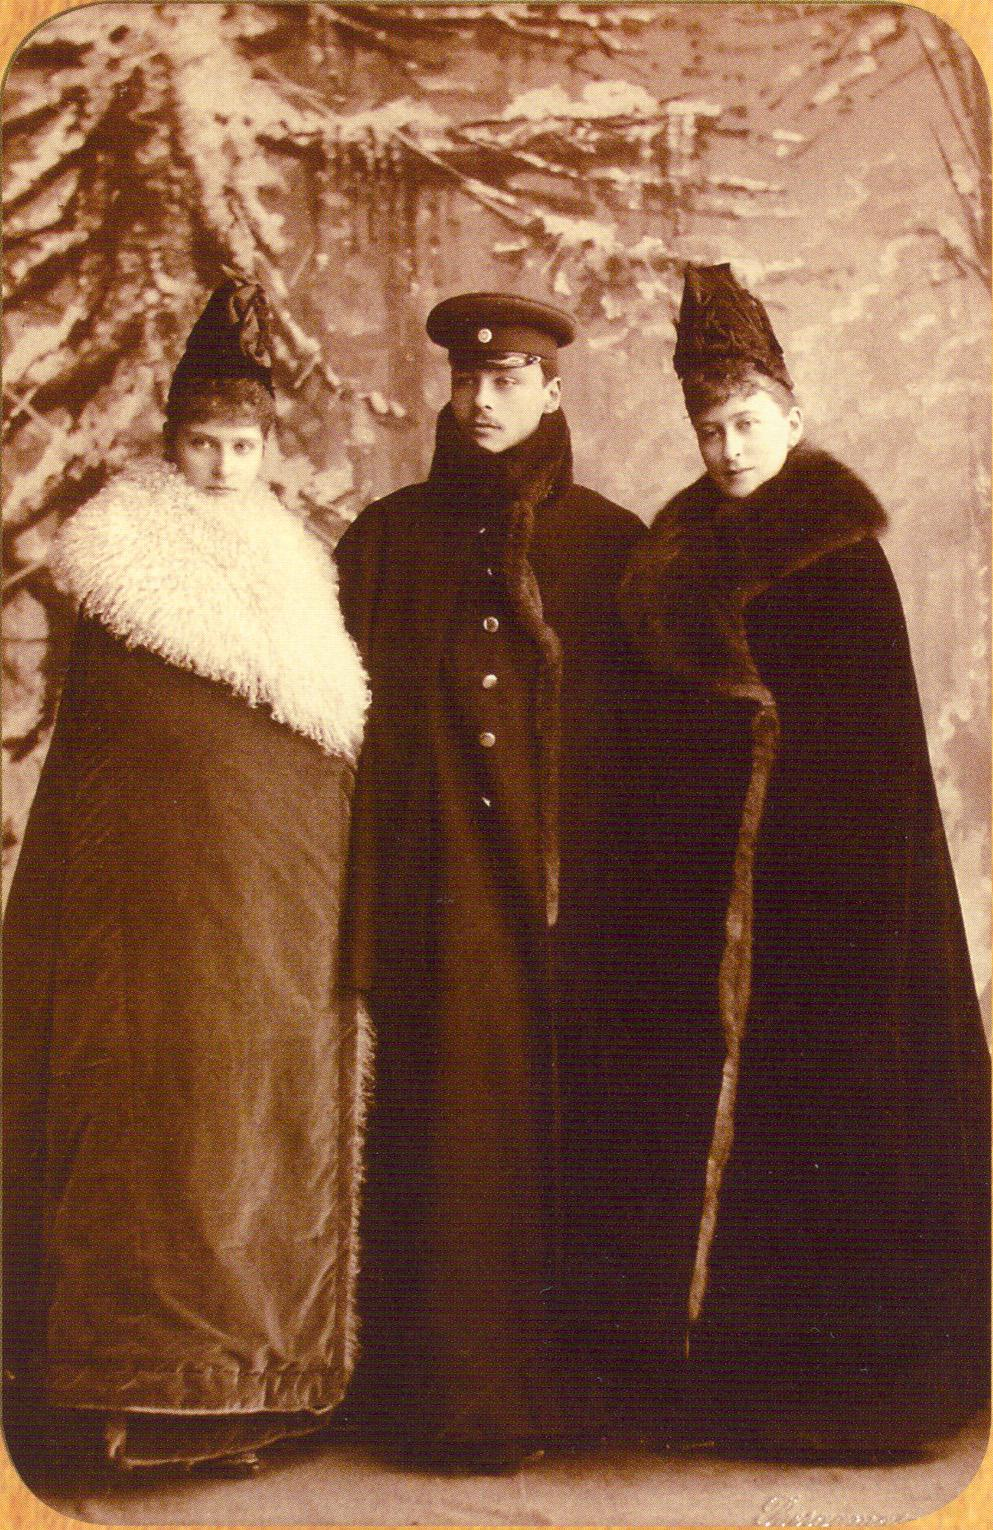 Russian royalty in winter garb